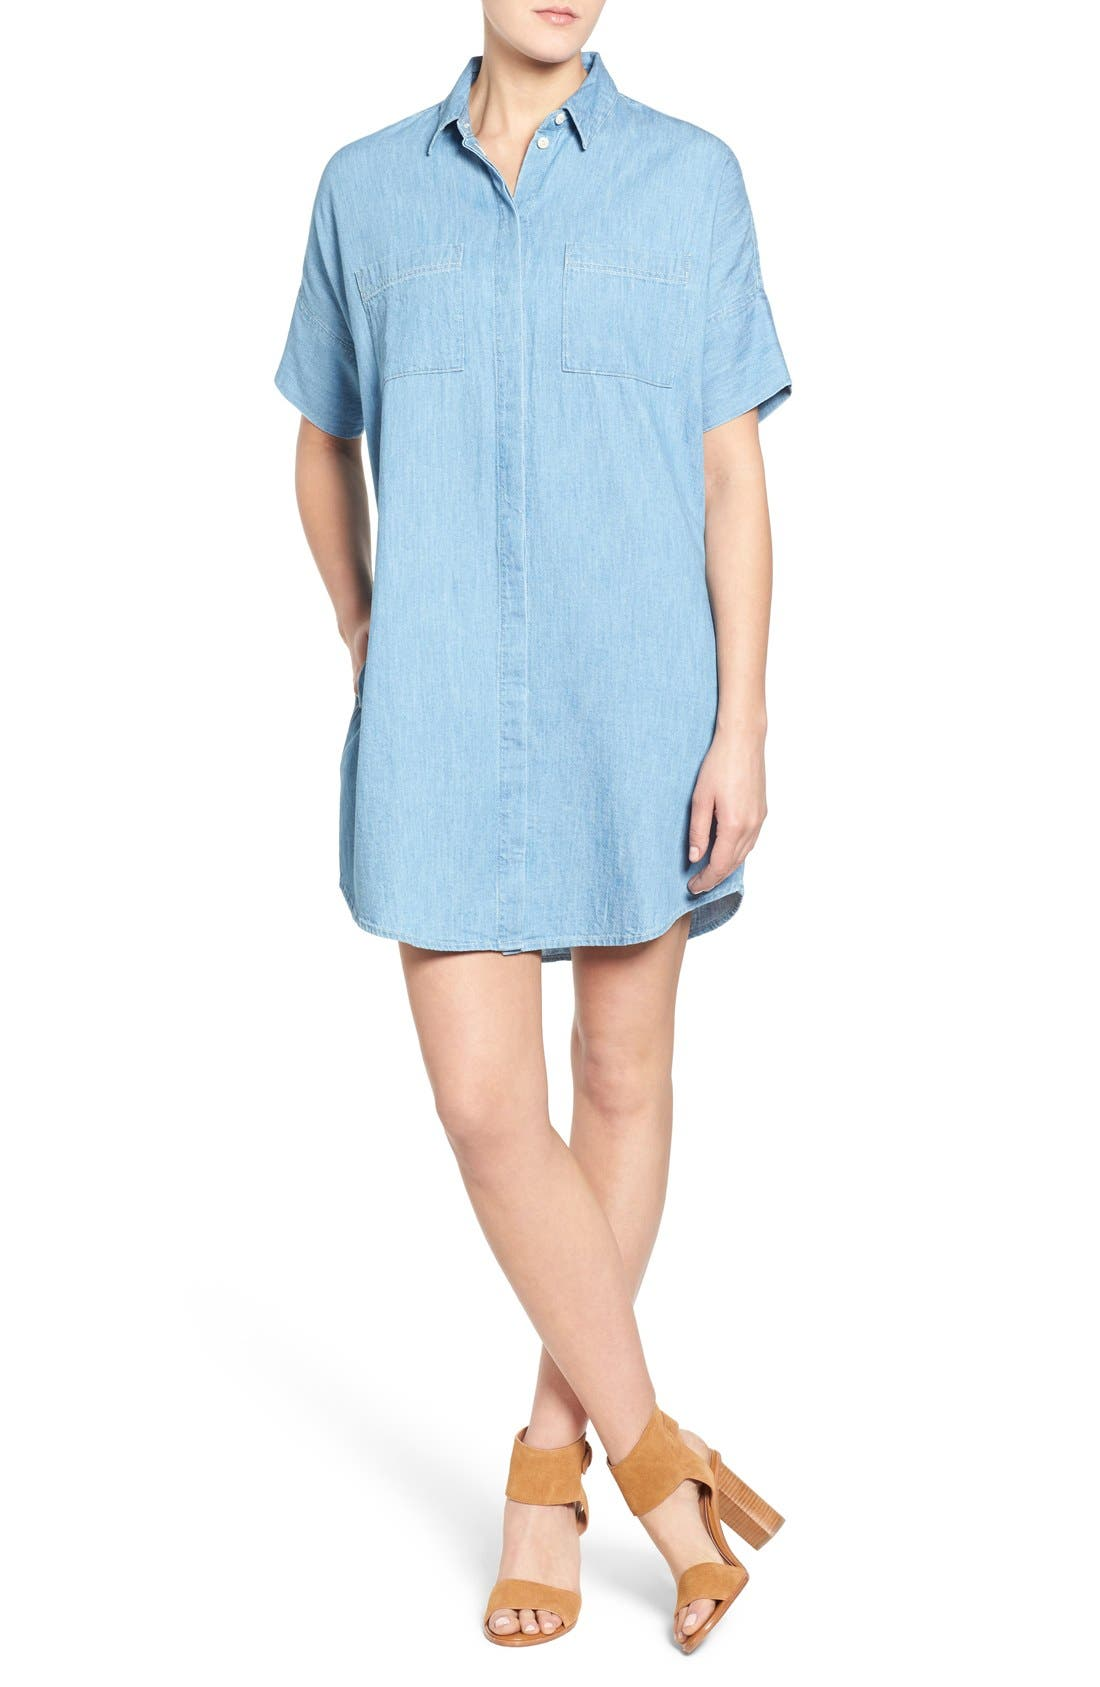 Alternate Image 1 Selected - Madewell 'Courier' Denim Shirtdress